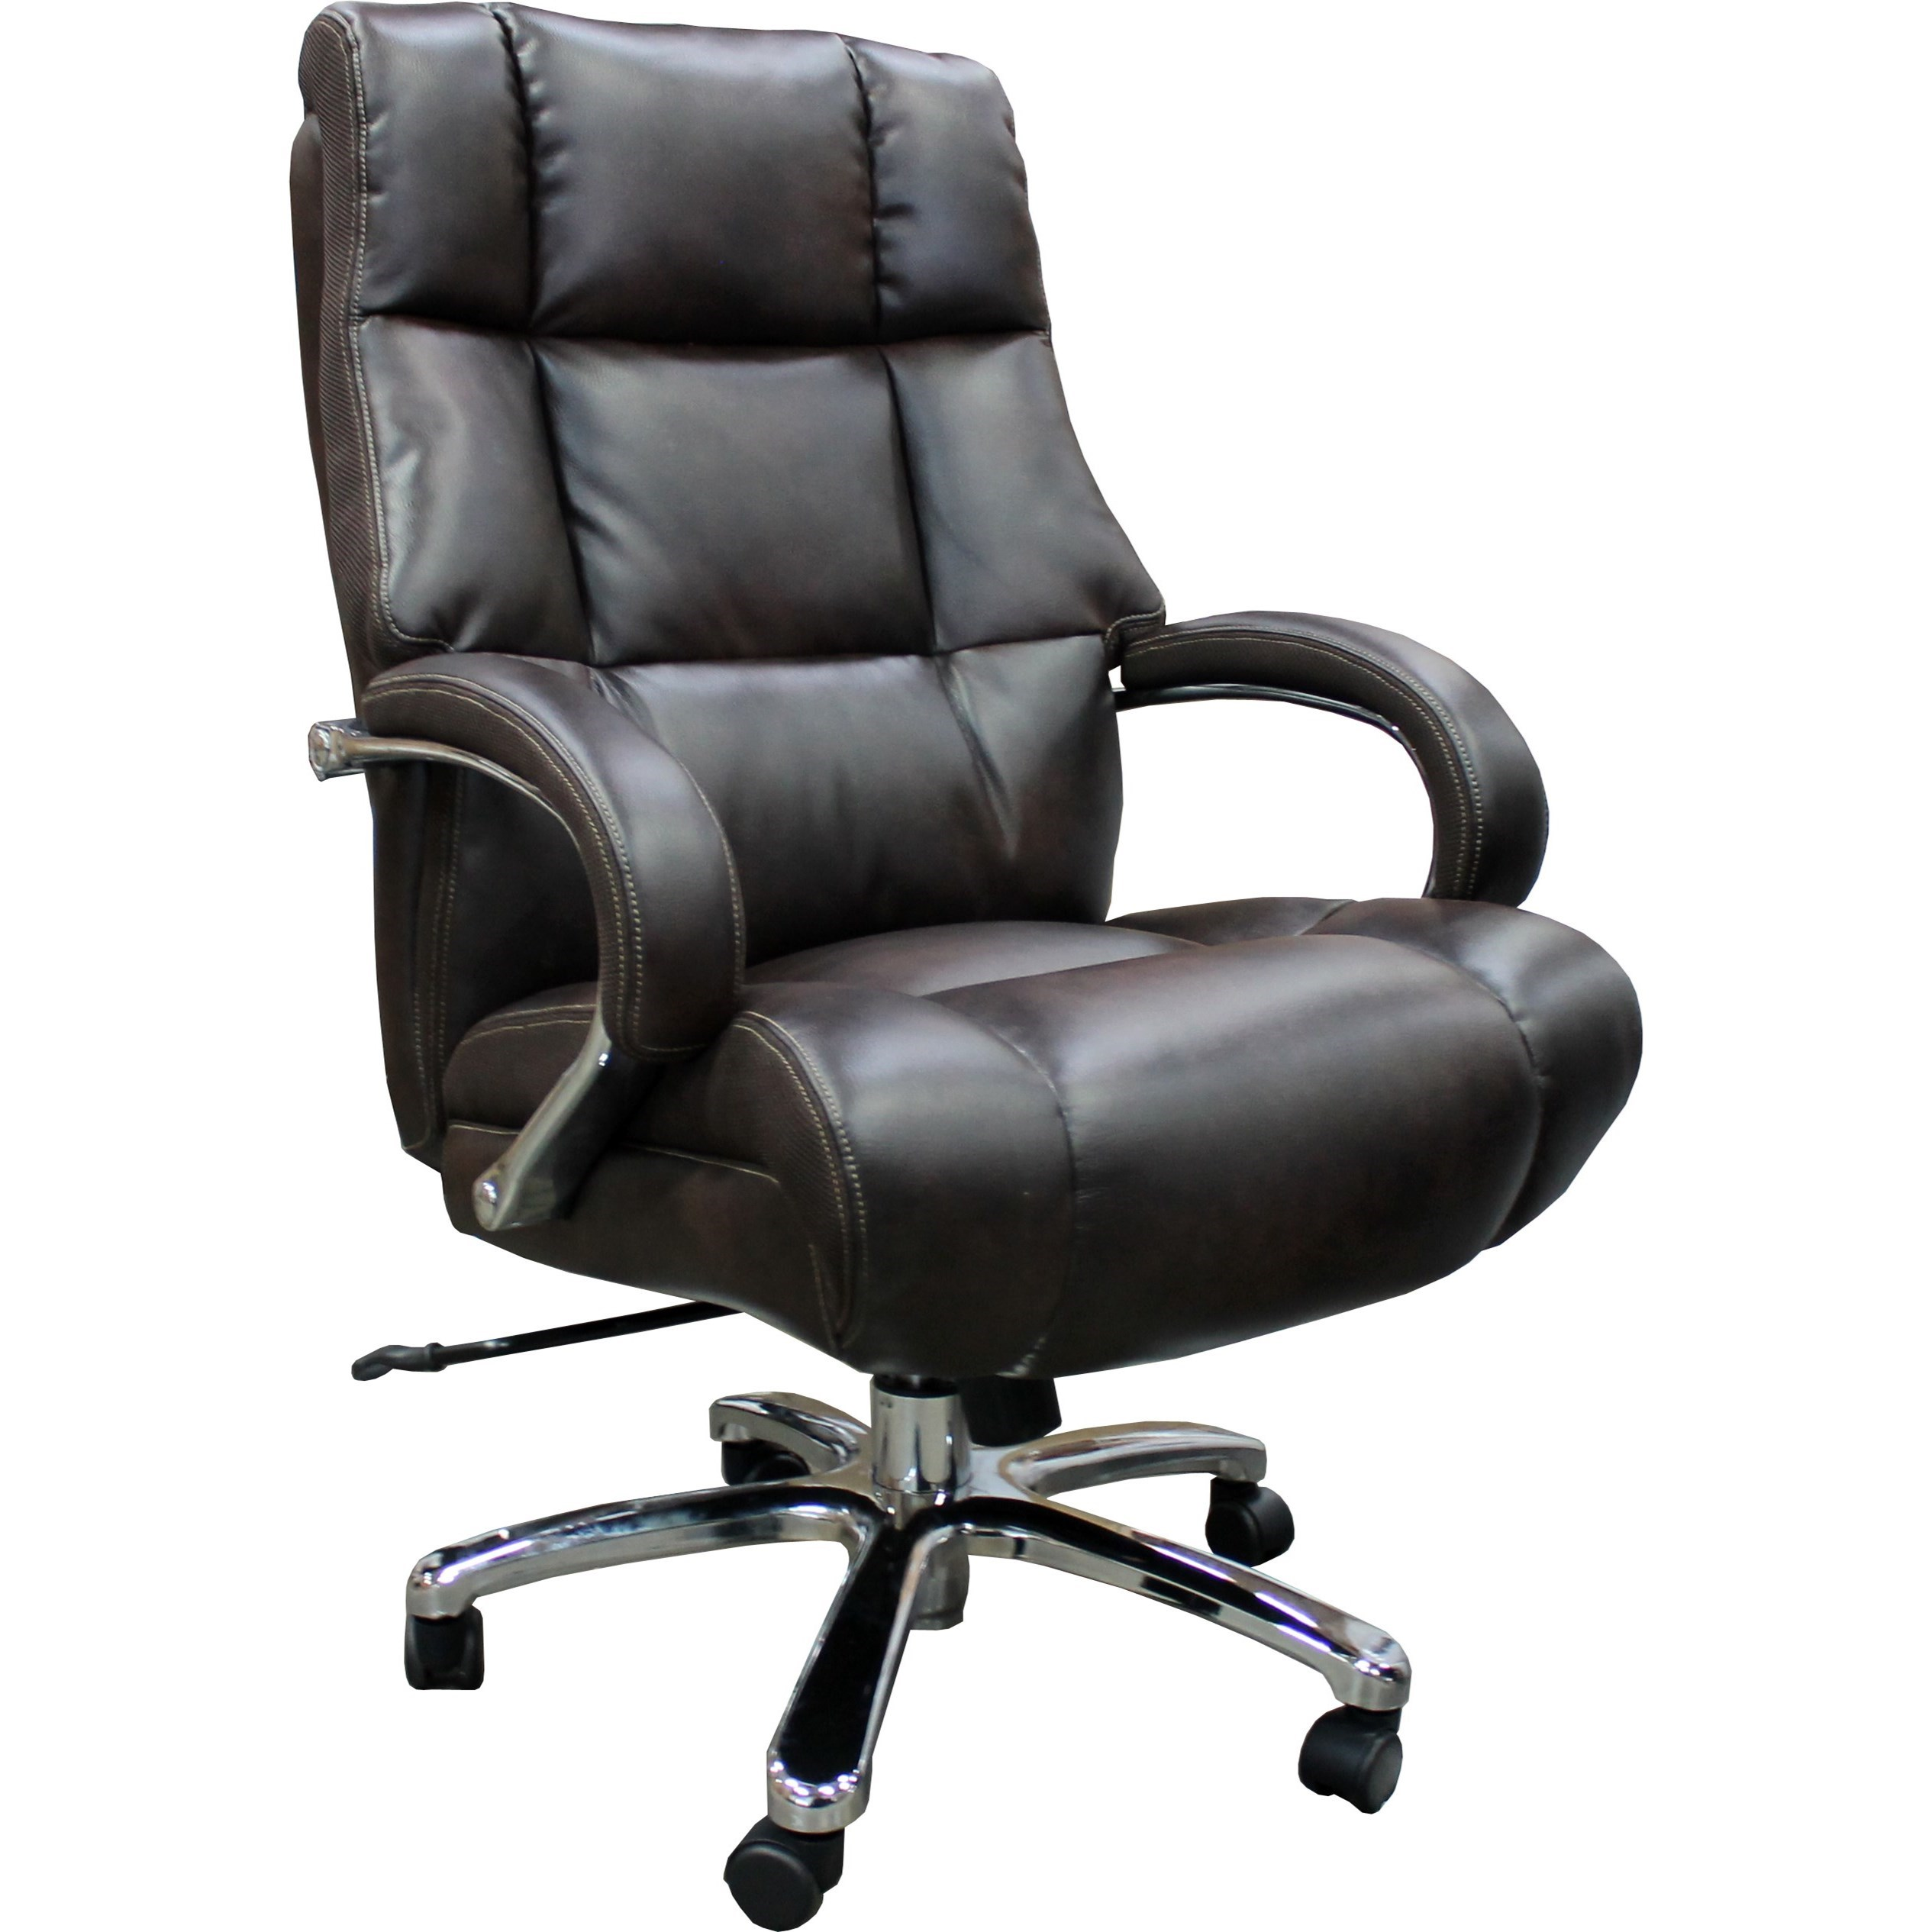 Desk Chairs Heavy Duty Desk Chair by Parker Living at Miller Waldrop Furniture and Decor